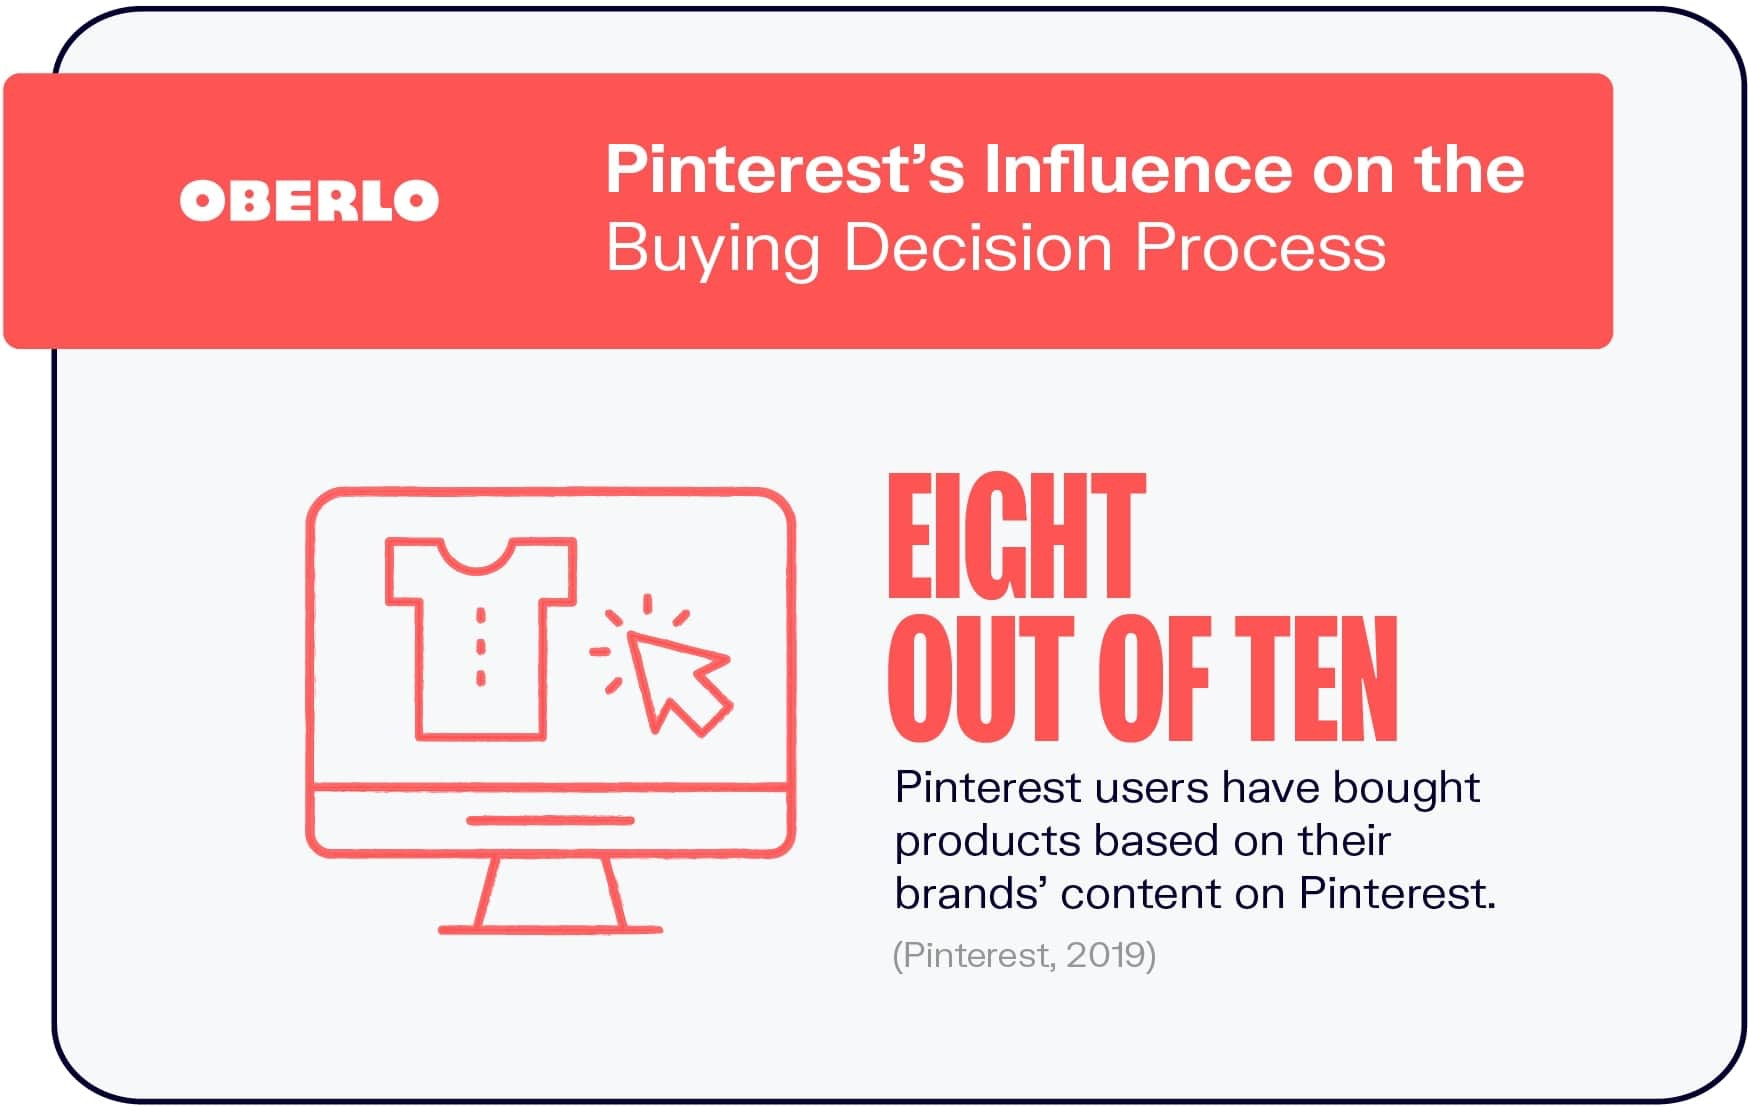 Pinterest's Influence on the Buying Decision Process